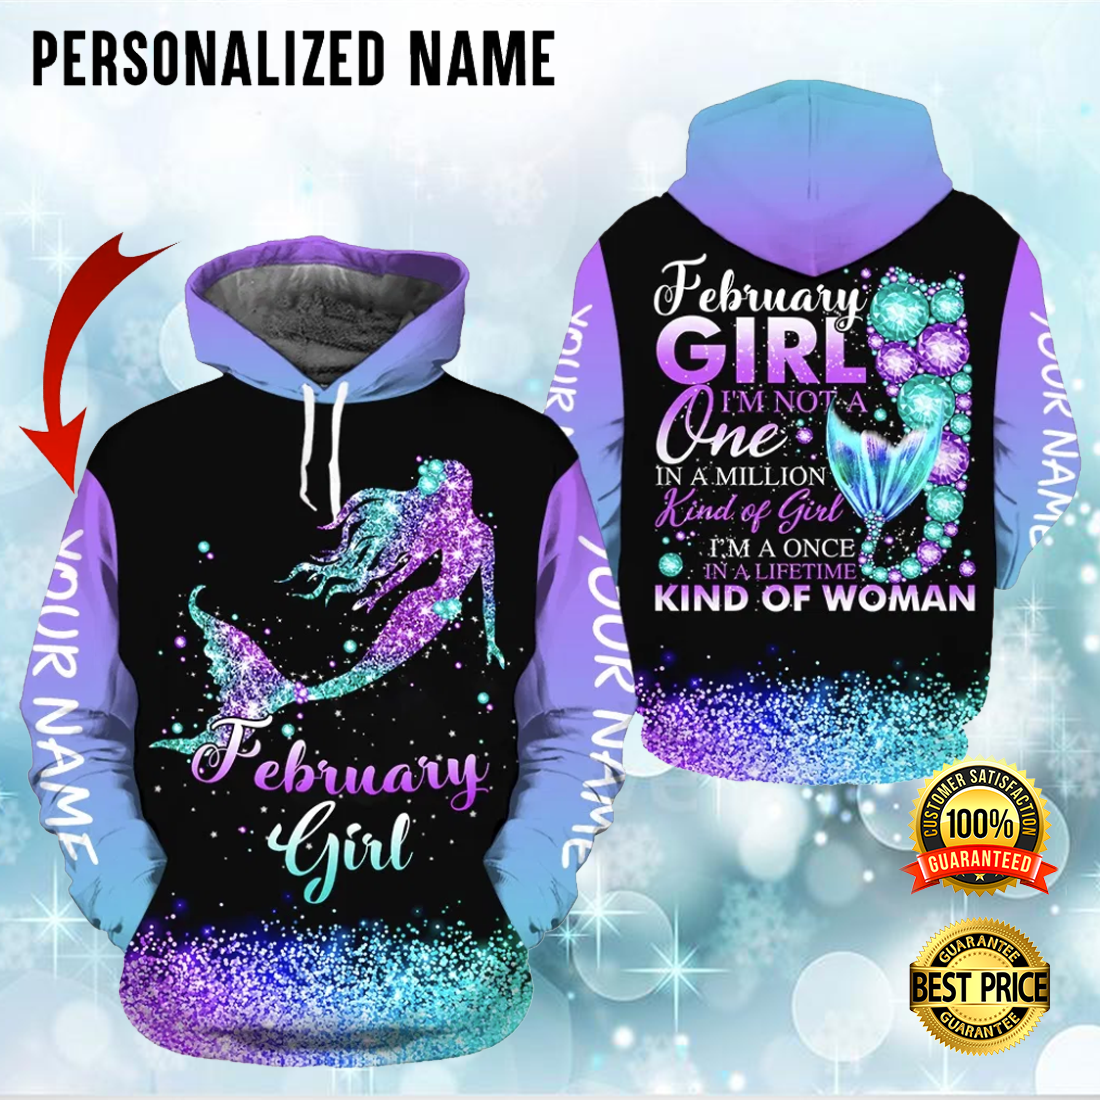 PERSONALIZED MERMAID FEBRUARY GIRL I'M NOT A ONE IN A MILLION KIND OF GIRL ALL OVER PRINTED 3D HOODIE 6